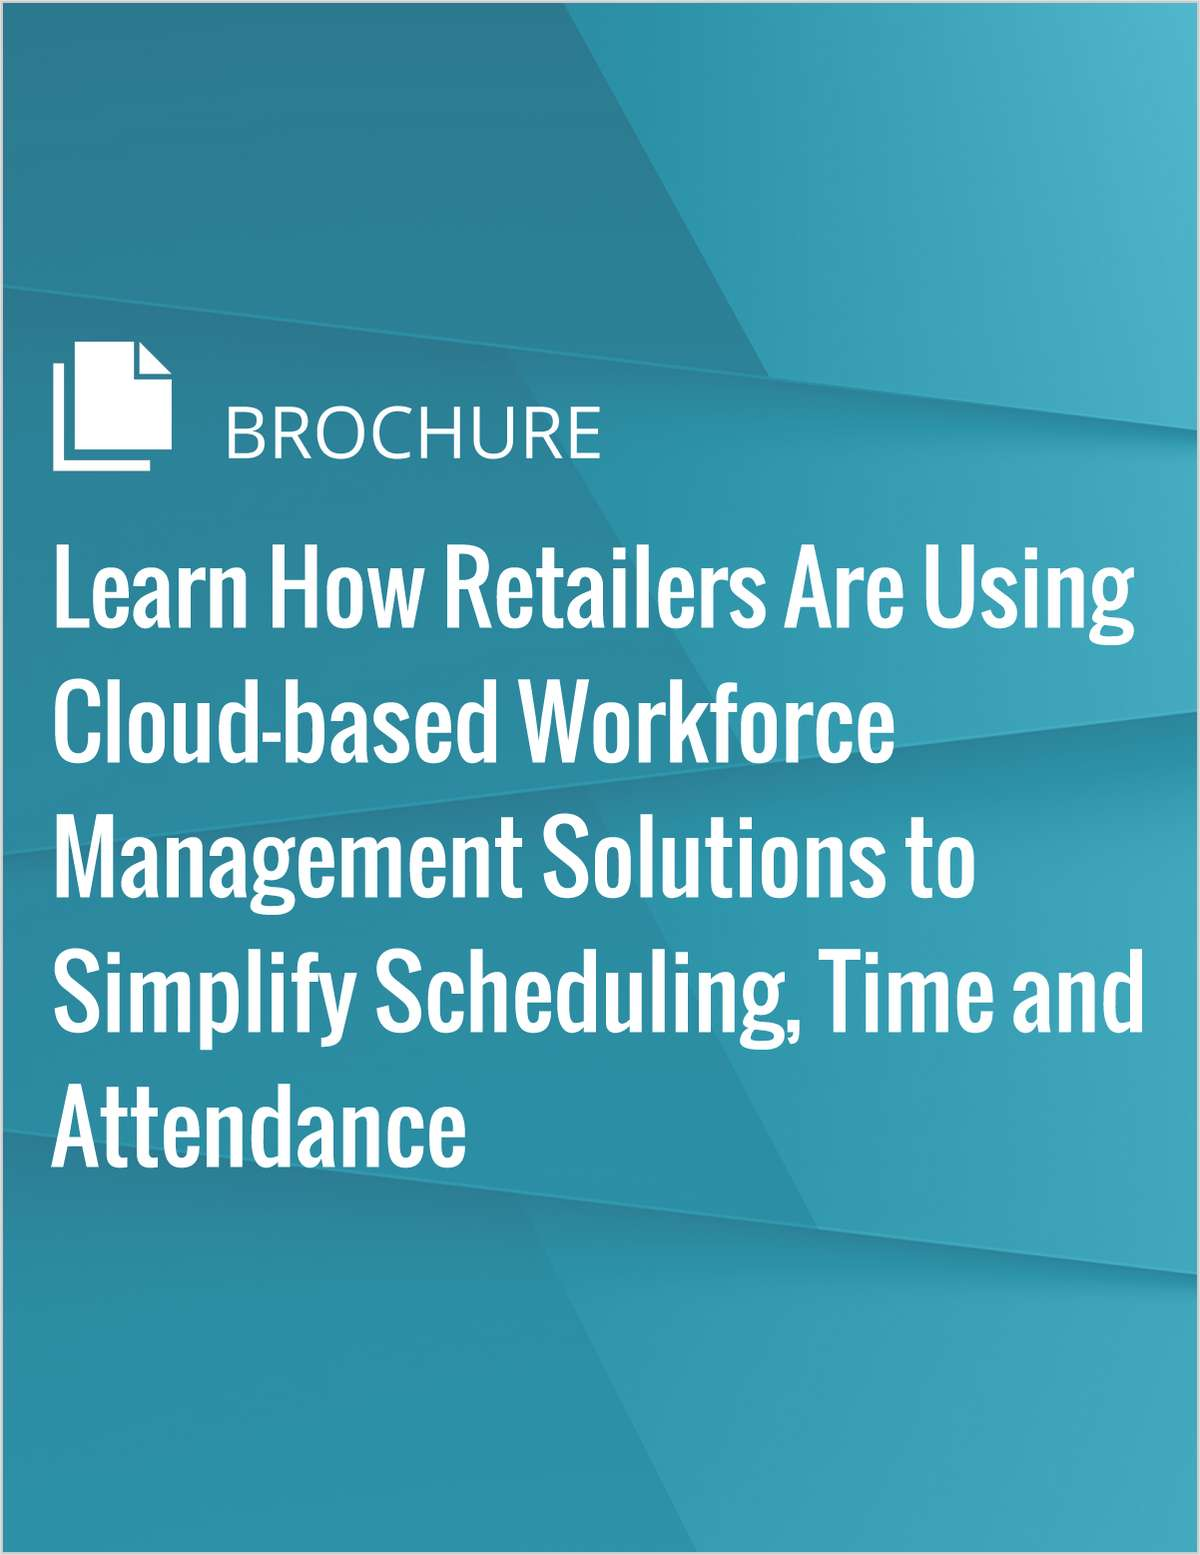 Learn How Retailers Are Using Cloud-based Workforce Management Solutions to Simplify Scheduling, Time and Attendance